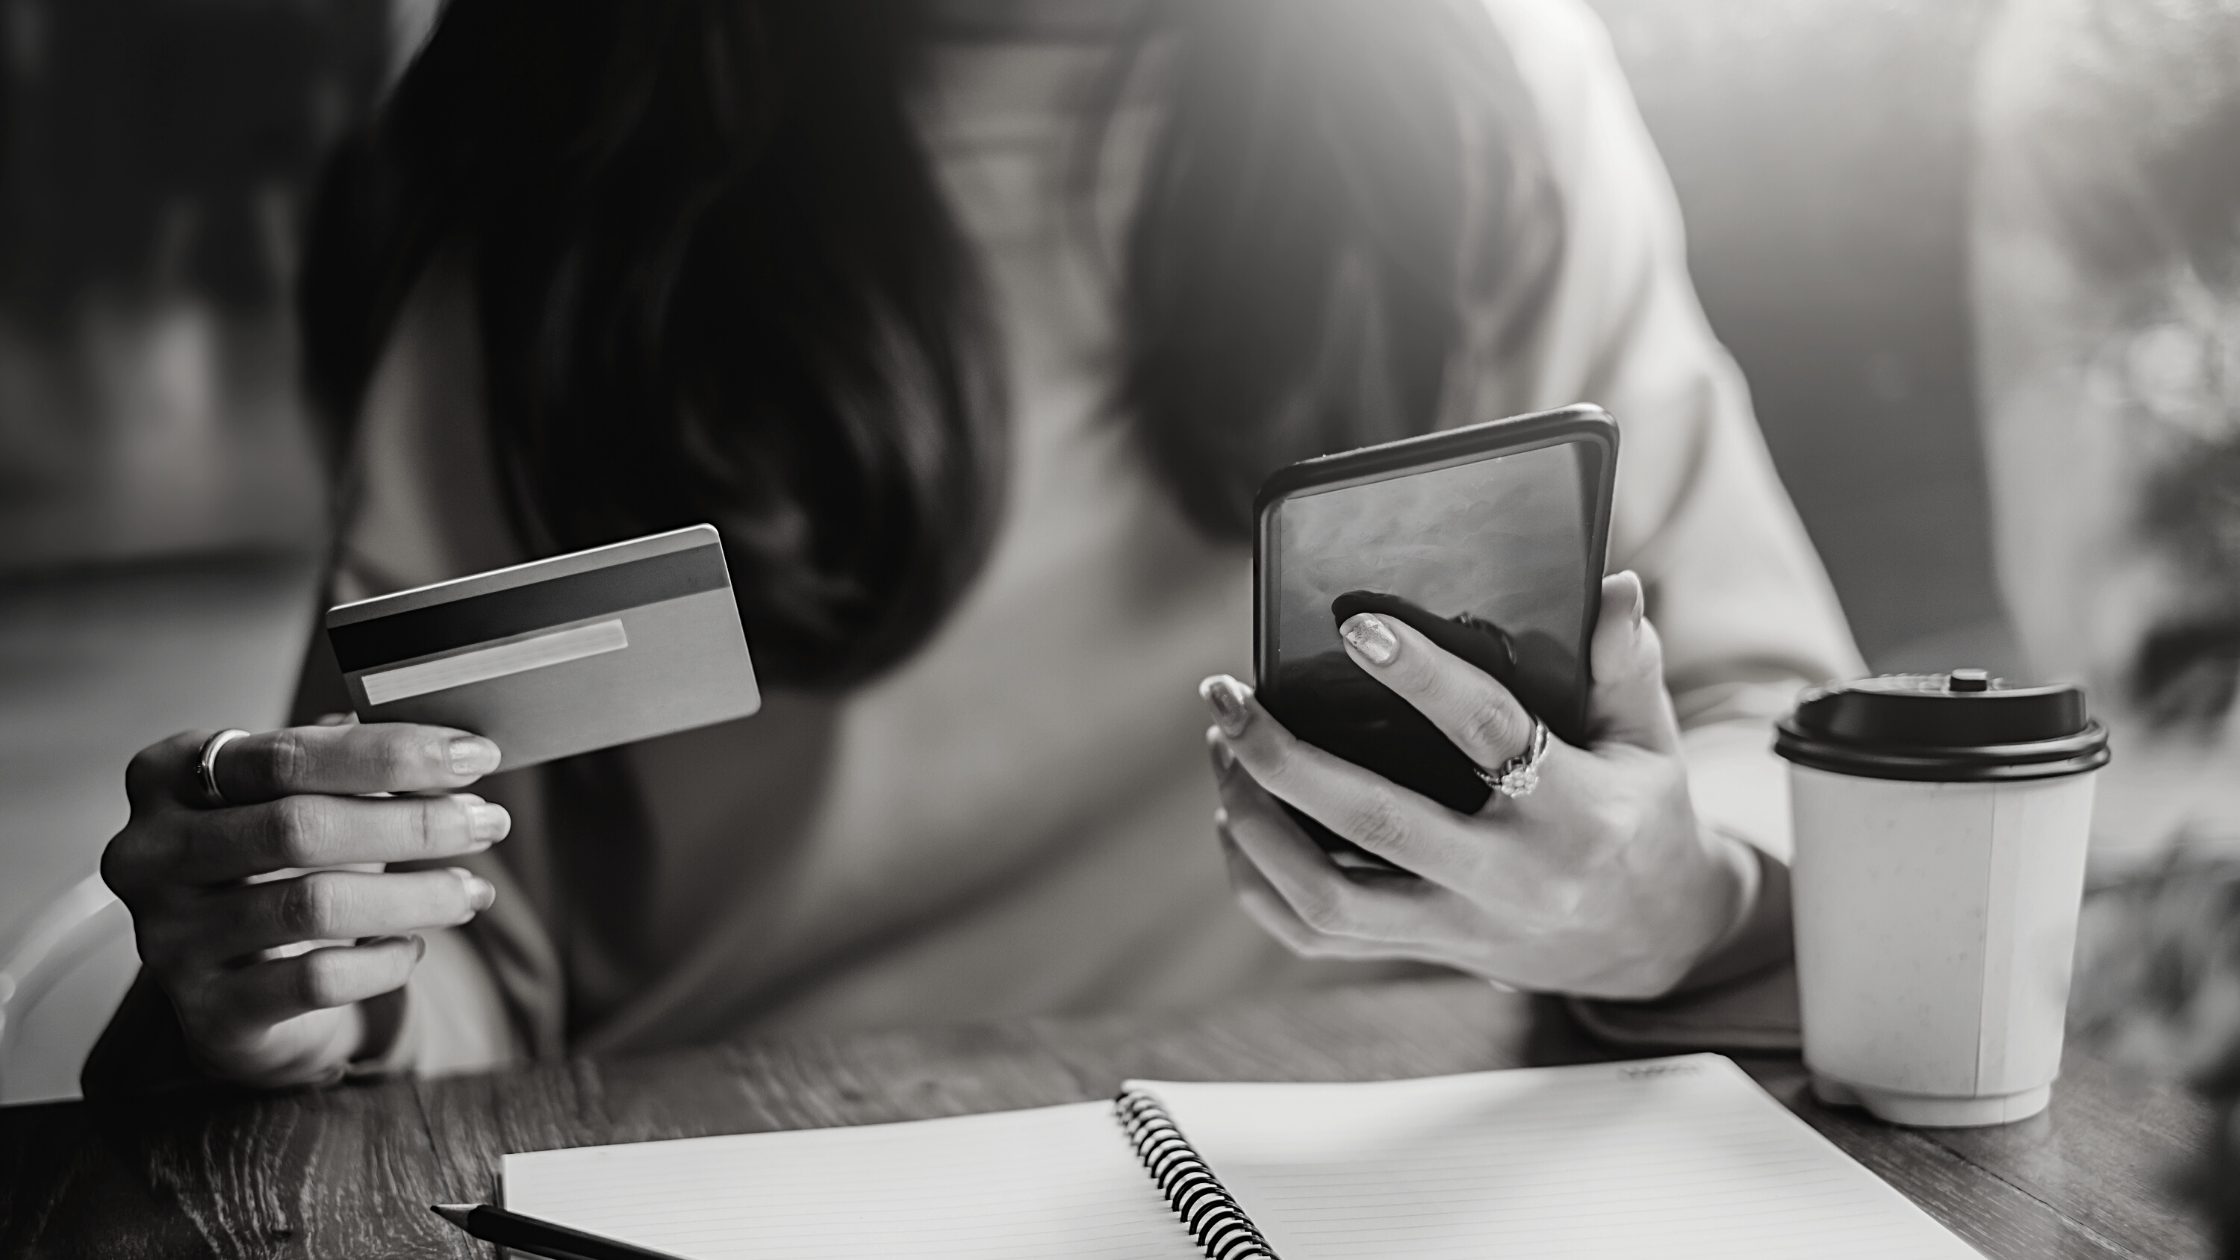 woman holding credit card in one hand and phone in the other